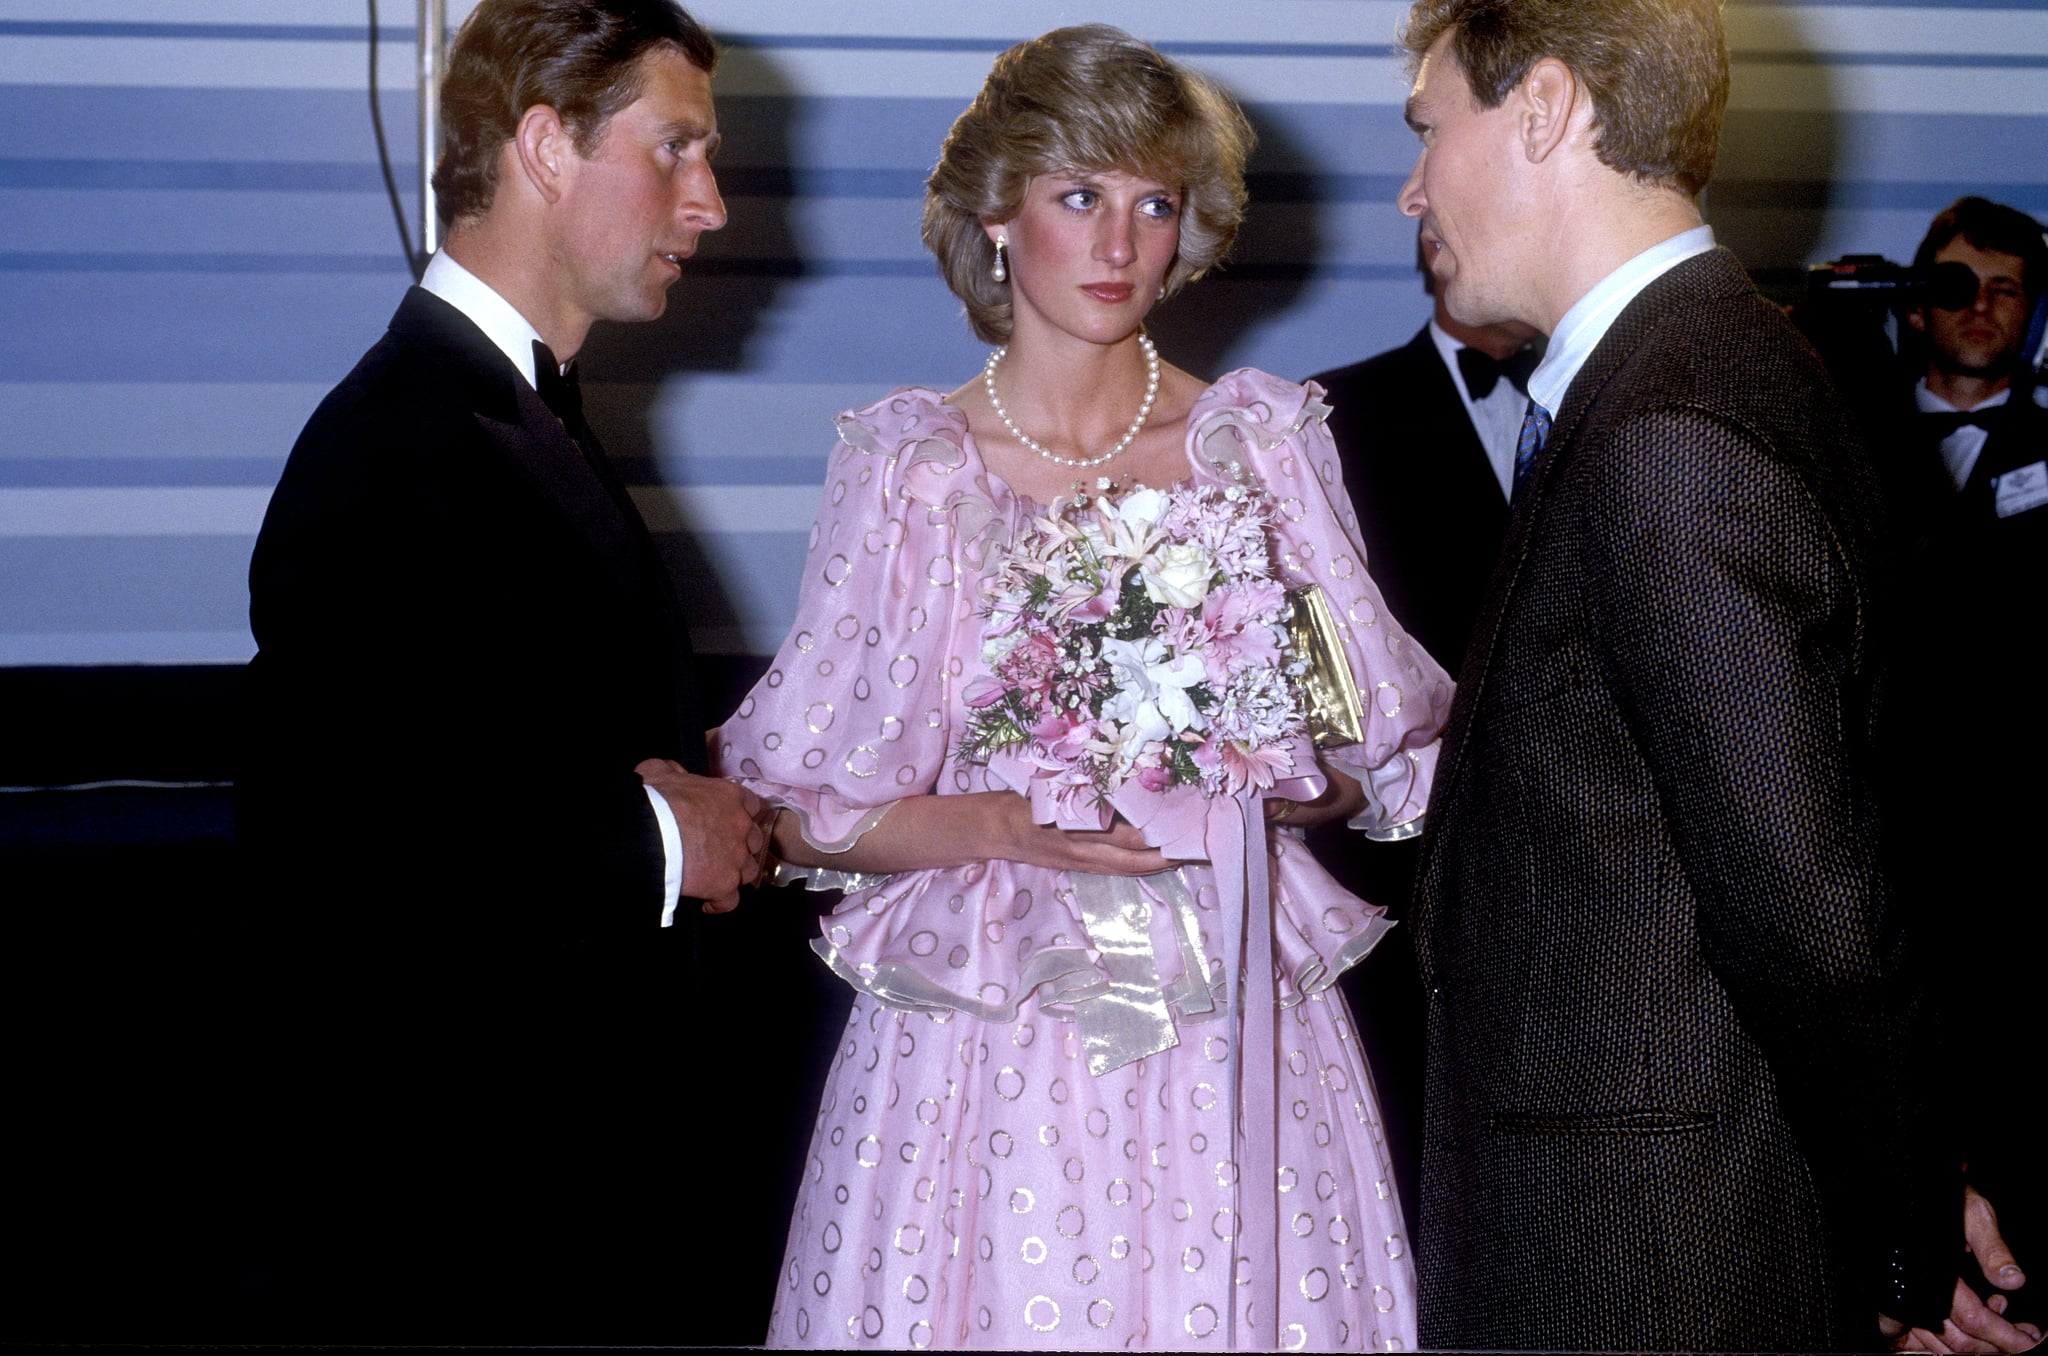 The Best Princess Diana Australia Tour